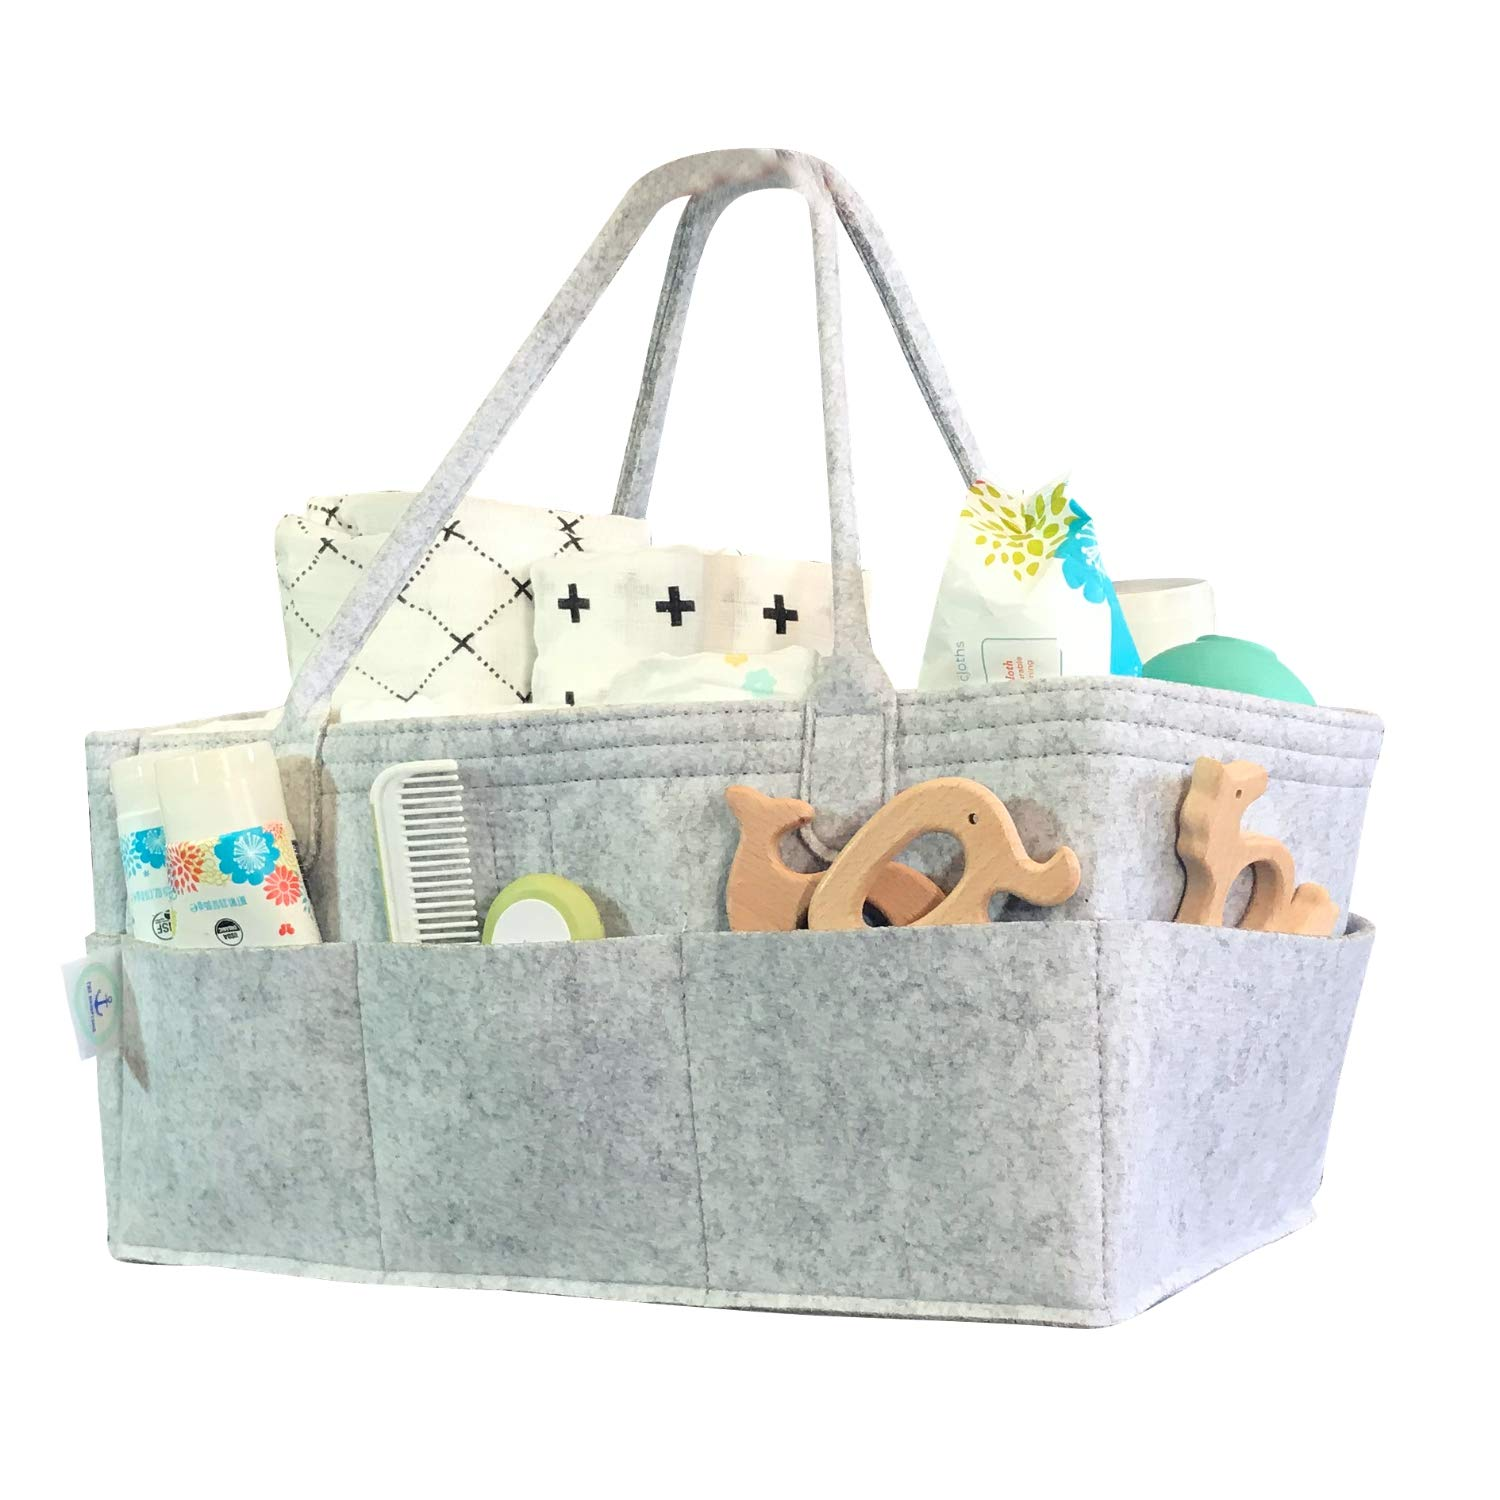 Diaper Caddy Organizer by The Hamptons Baby - Nursery Storage Bin for Diapers, Wipes, Toys and Supplies - Portable Car Tote, Mobile Storage & Changing Station